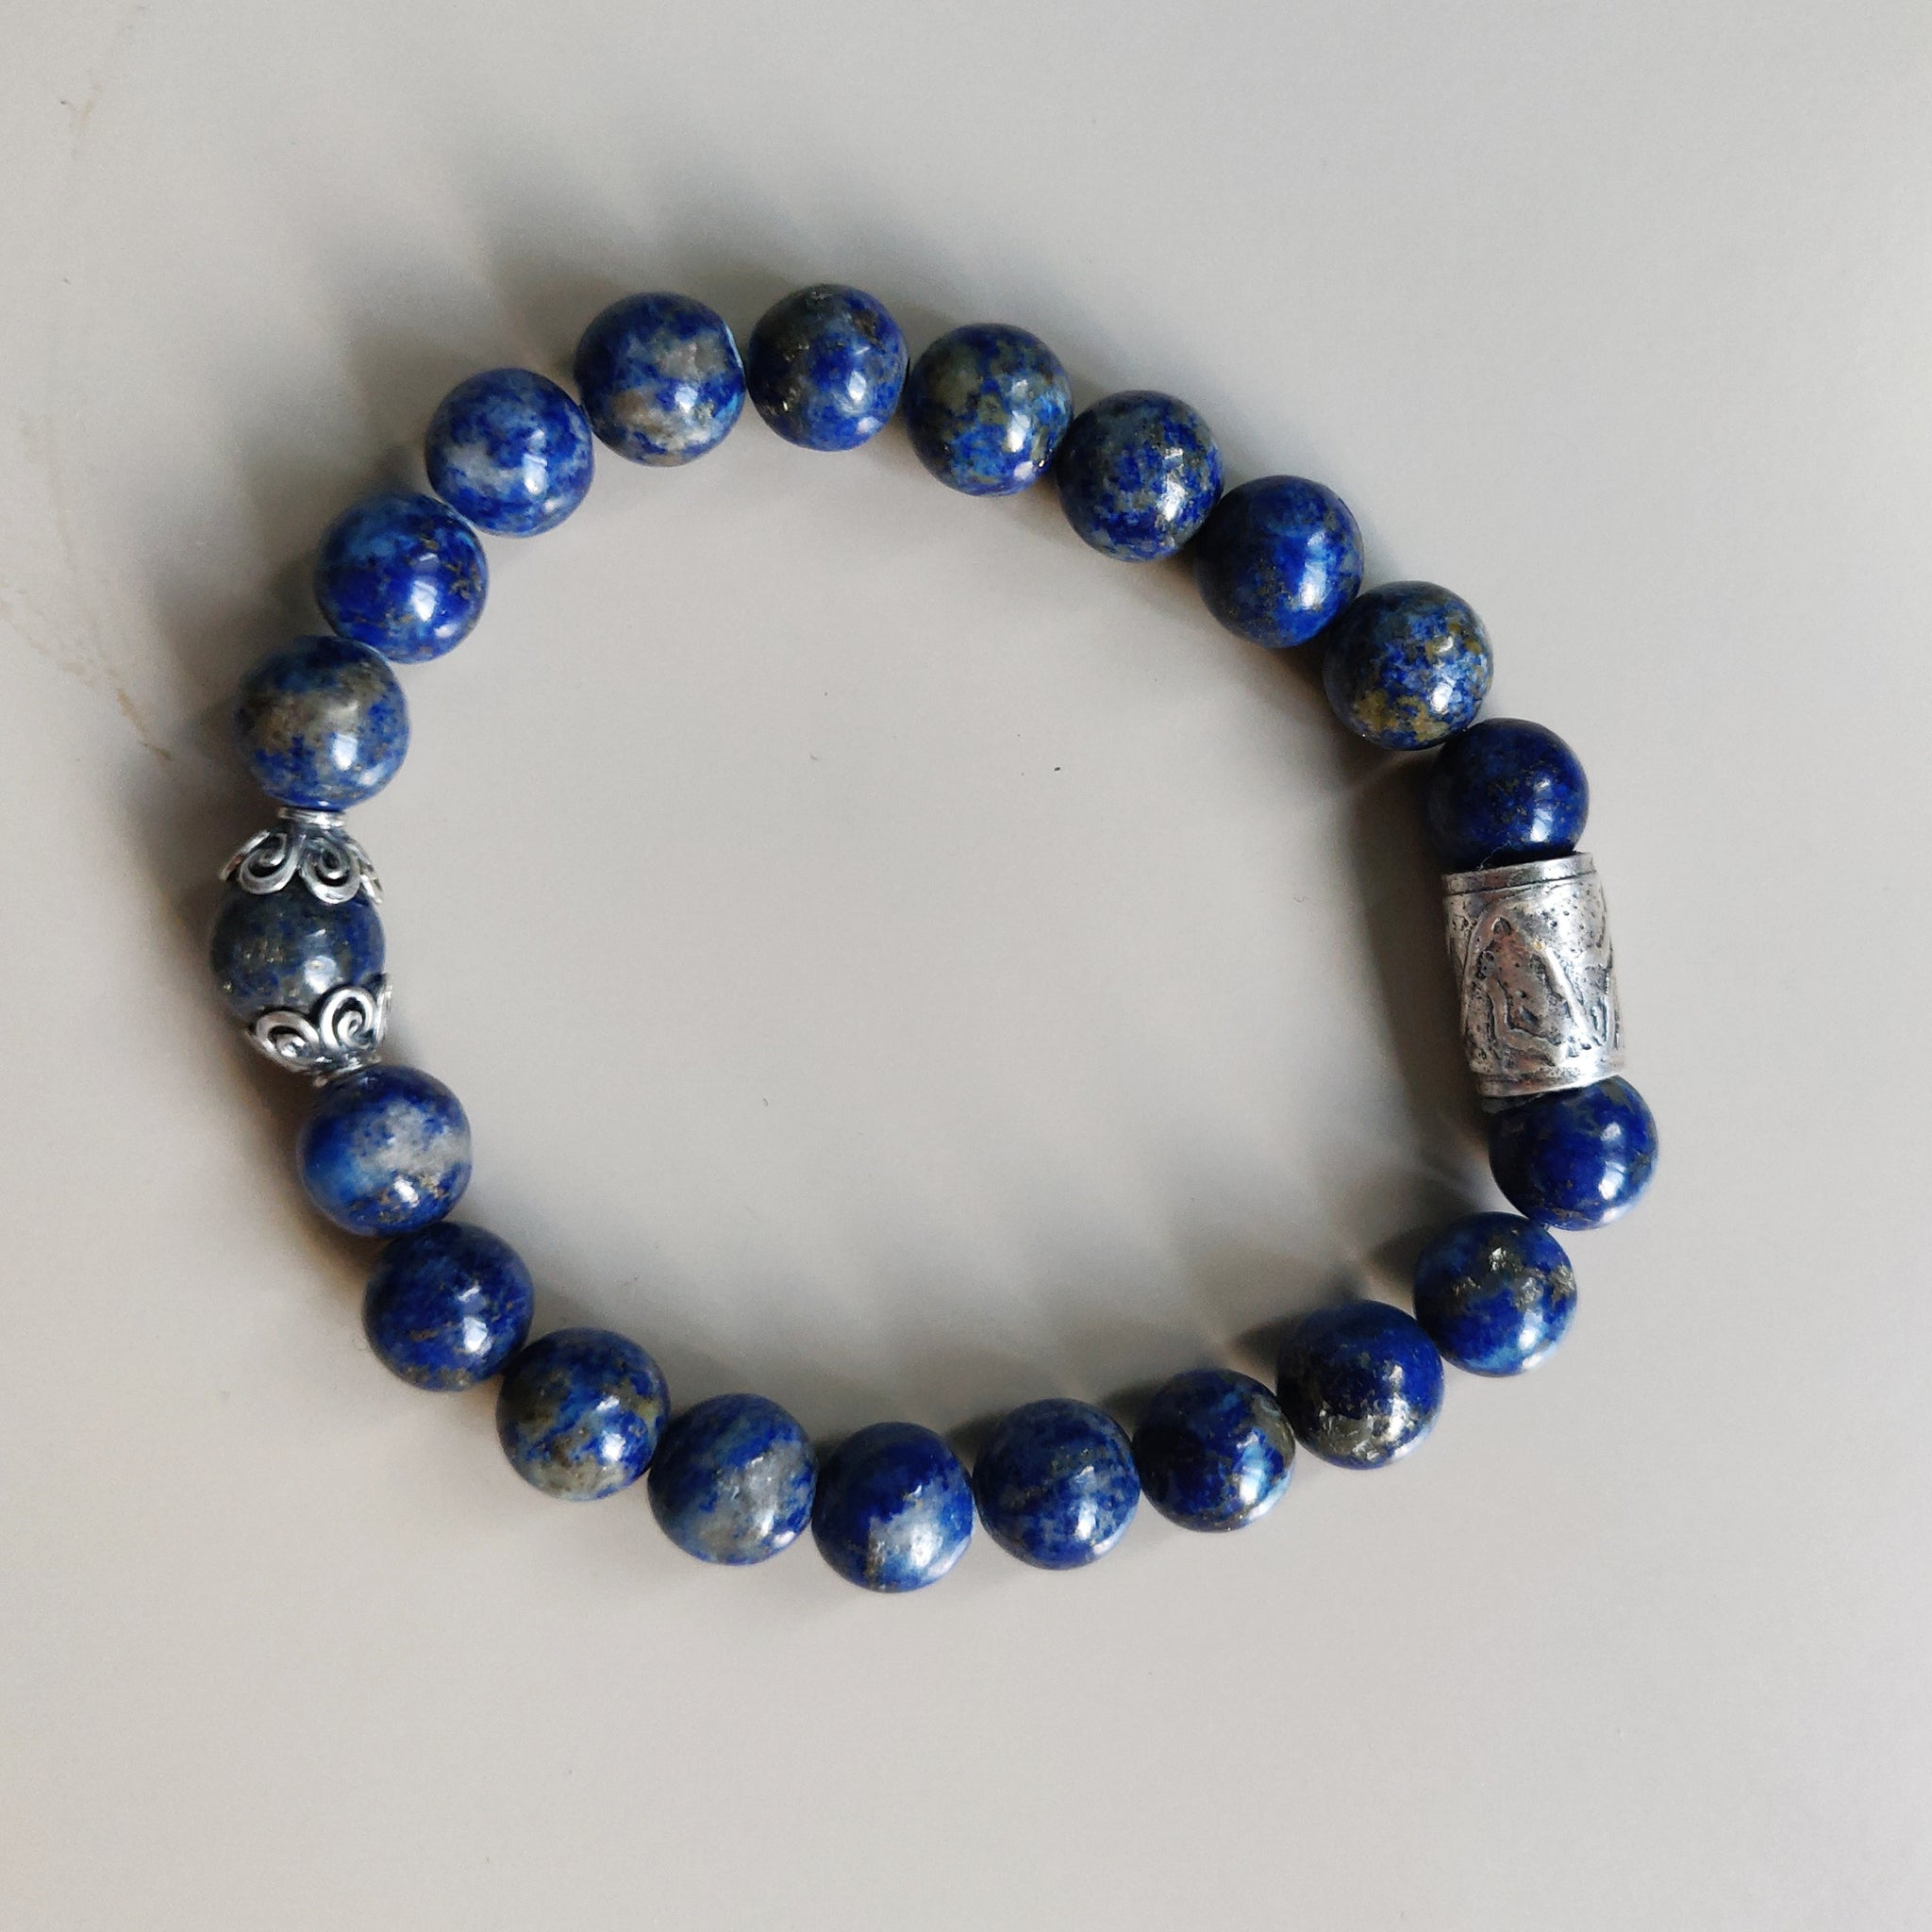 Lapis Lazuli and Sterling Silver Bracelet